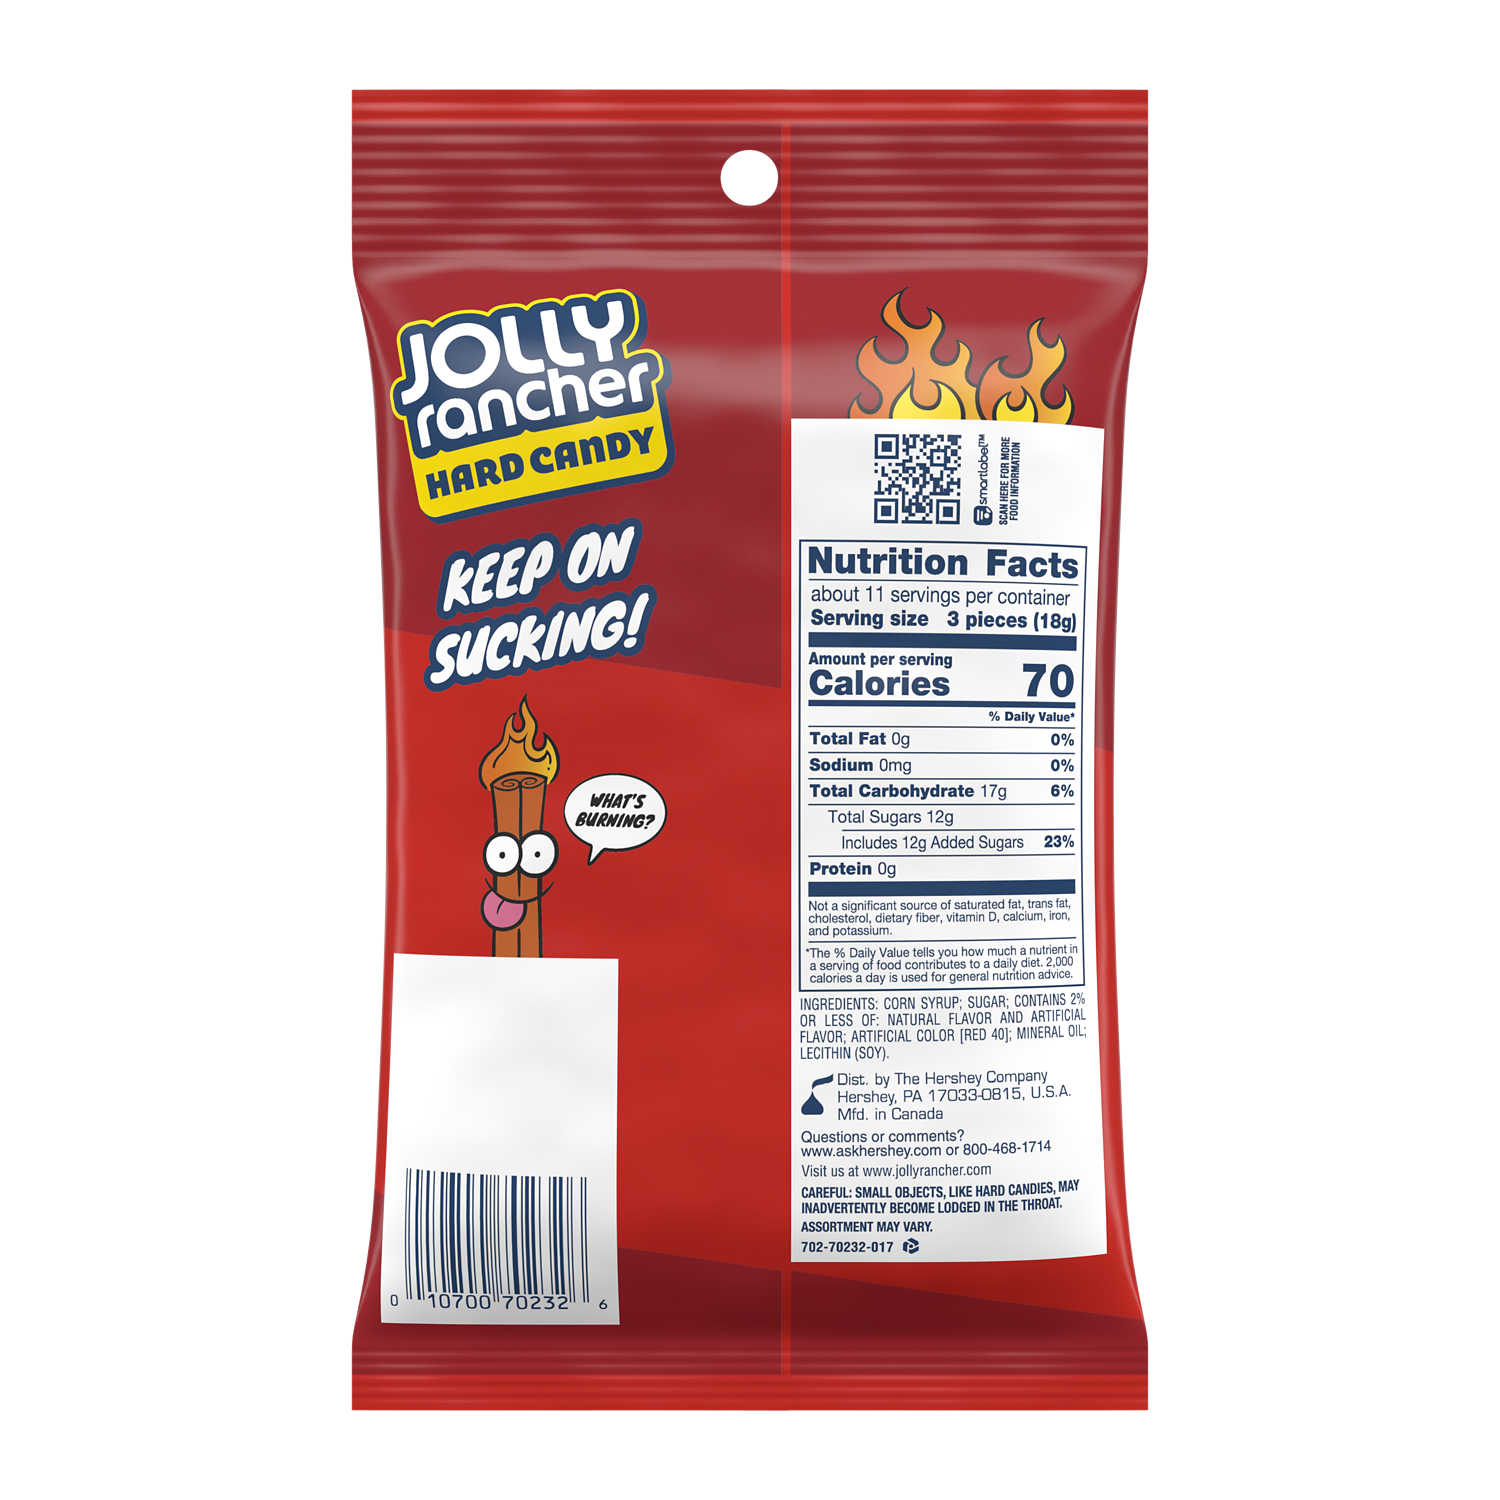 JOLLY RANCHER Cinnamon Fire Hard Candy, 7 oz bag - Back of Package